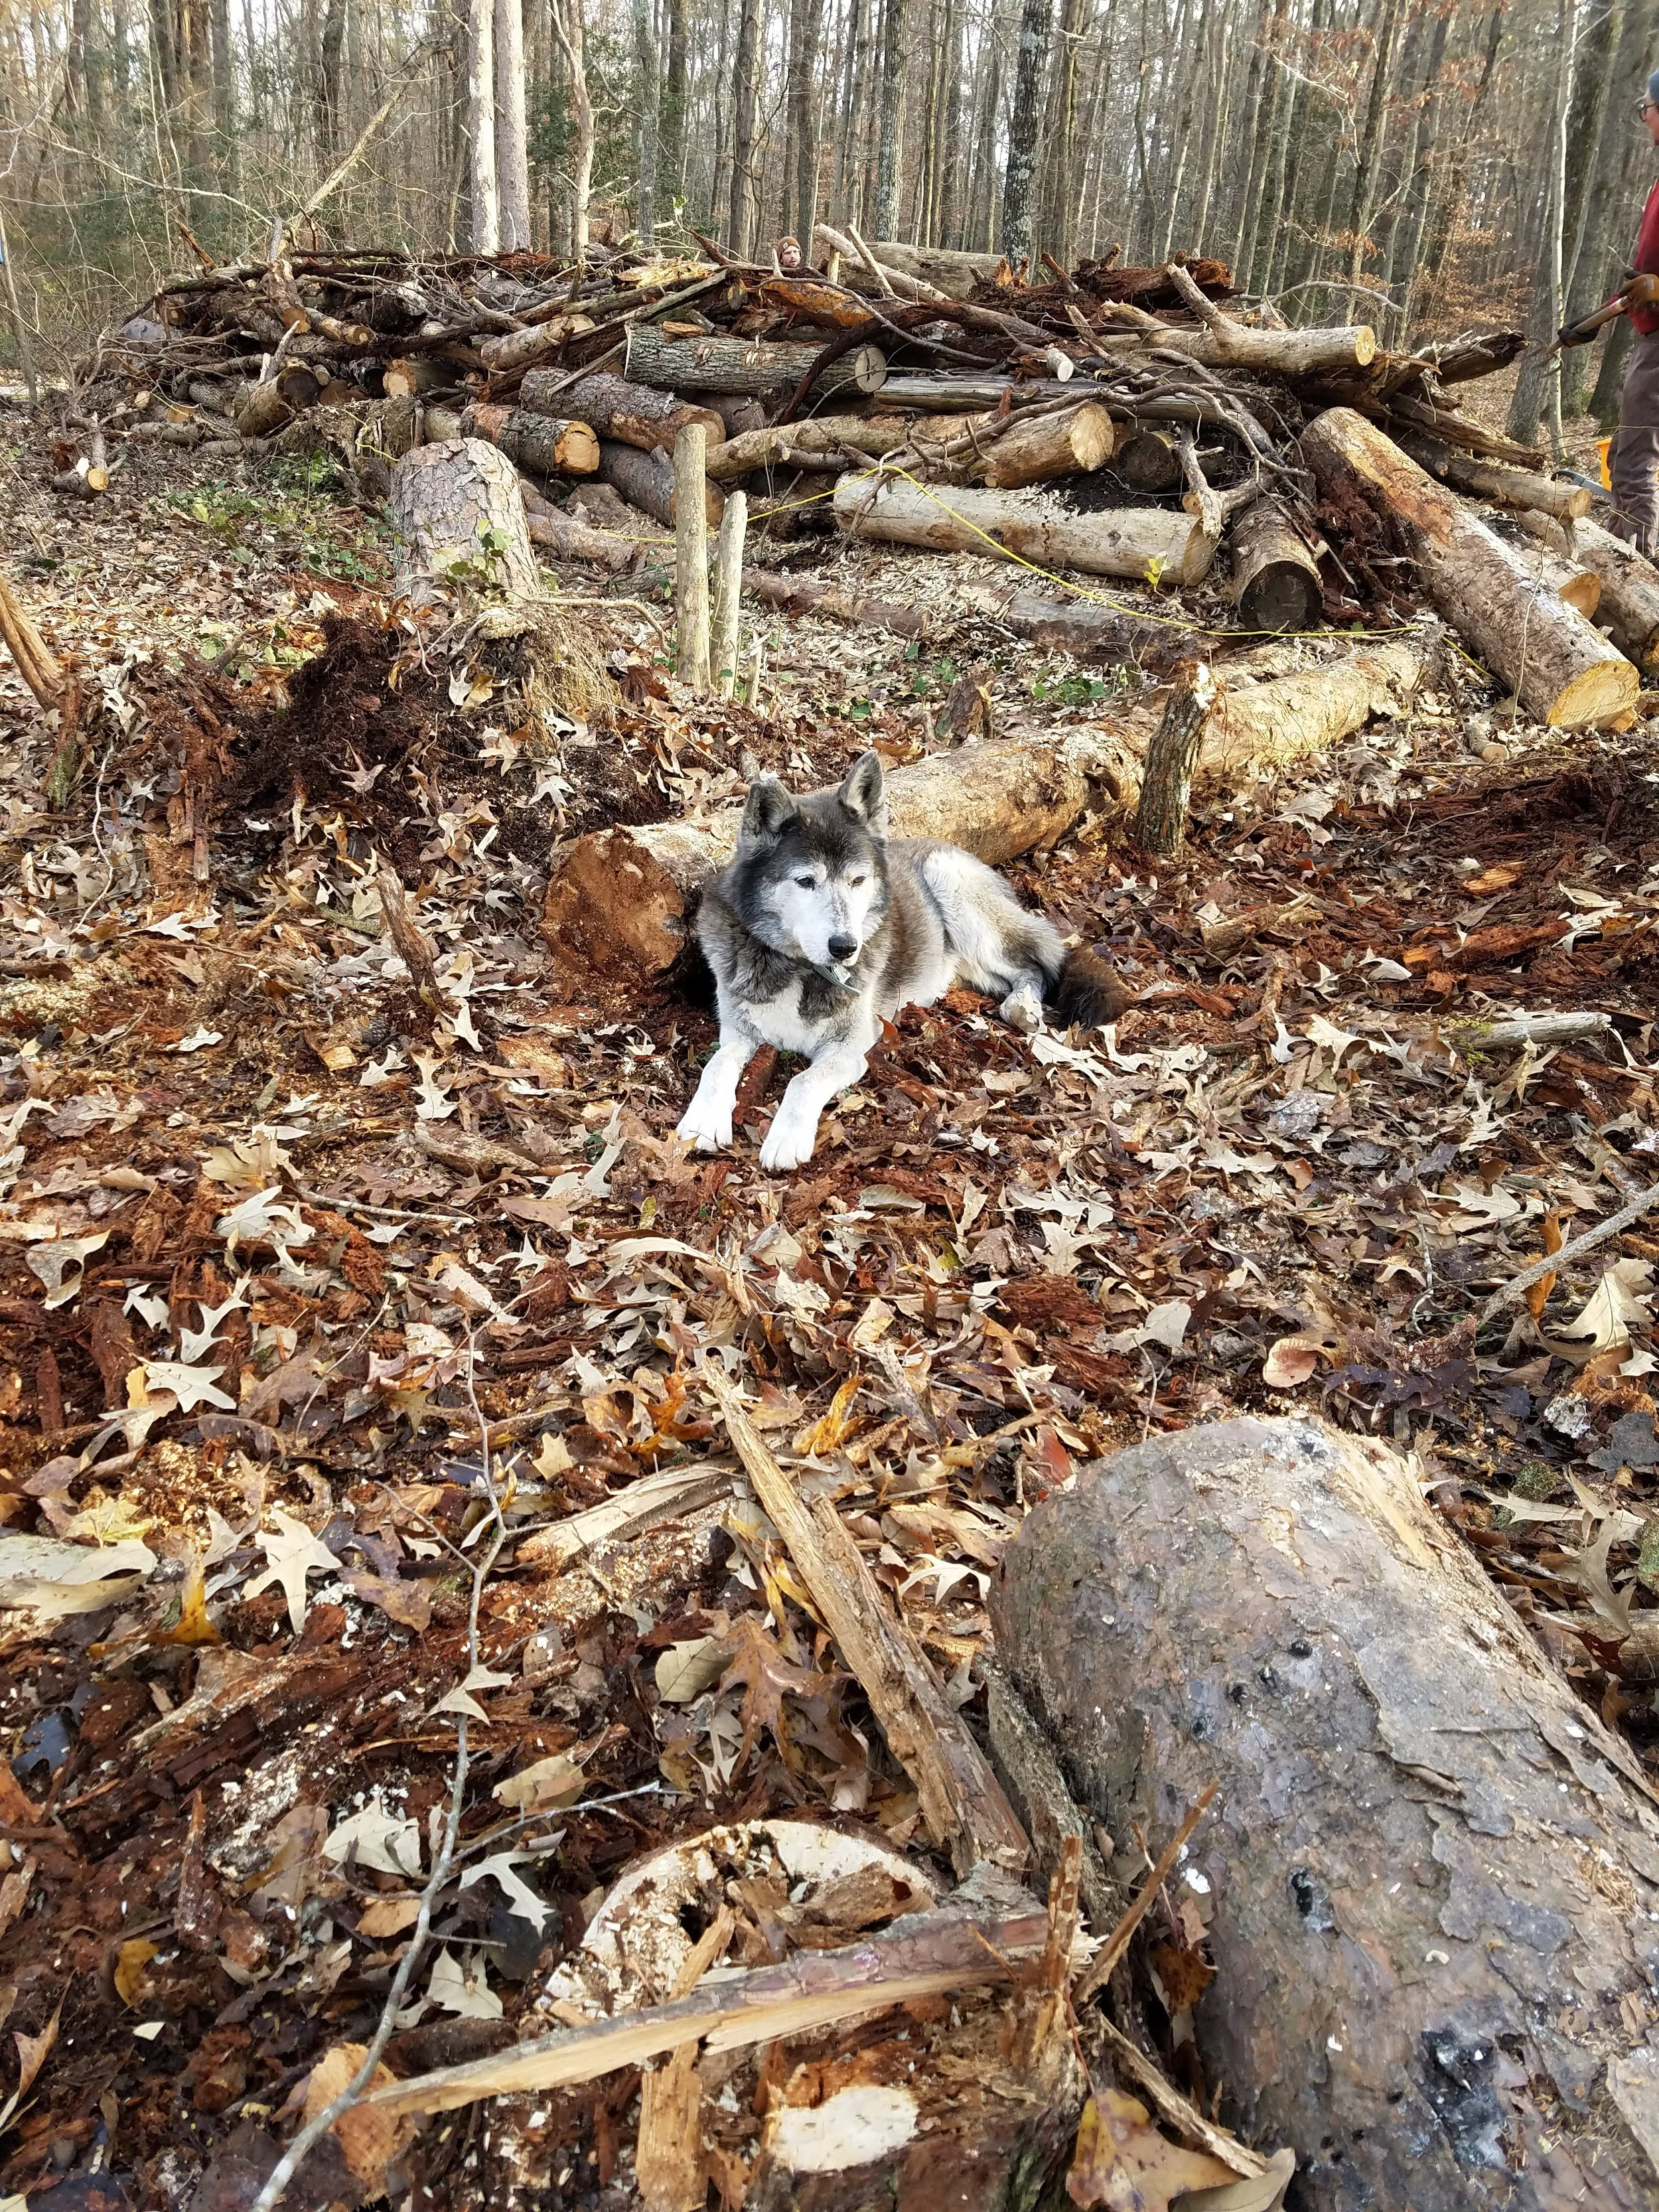 Melvin supervised while we built a hugelkultur mound at our friend's family's property in Southern Maryland yesterday.